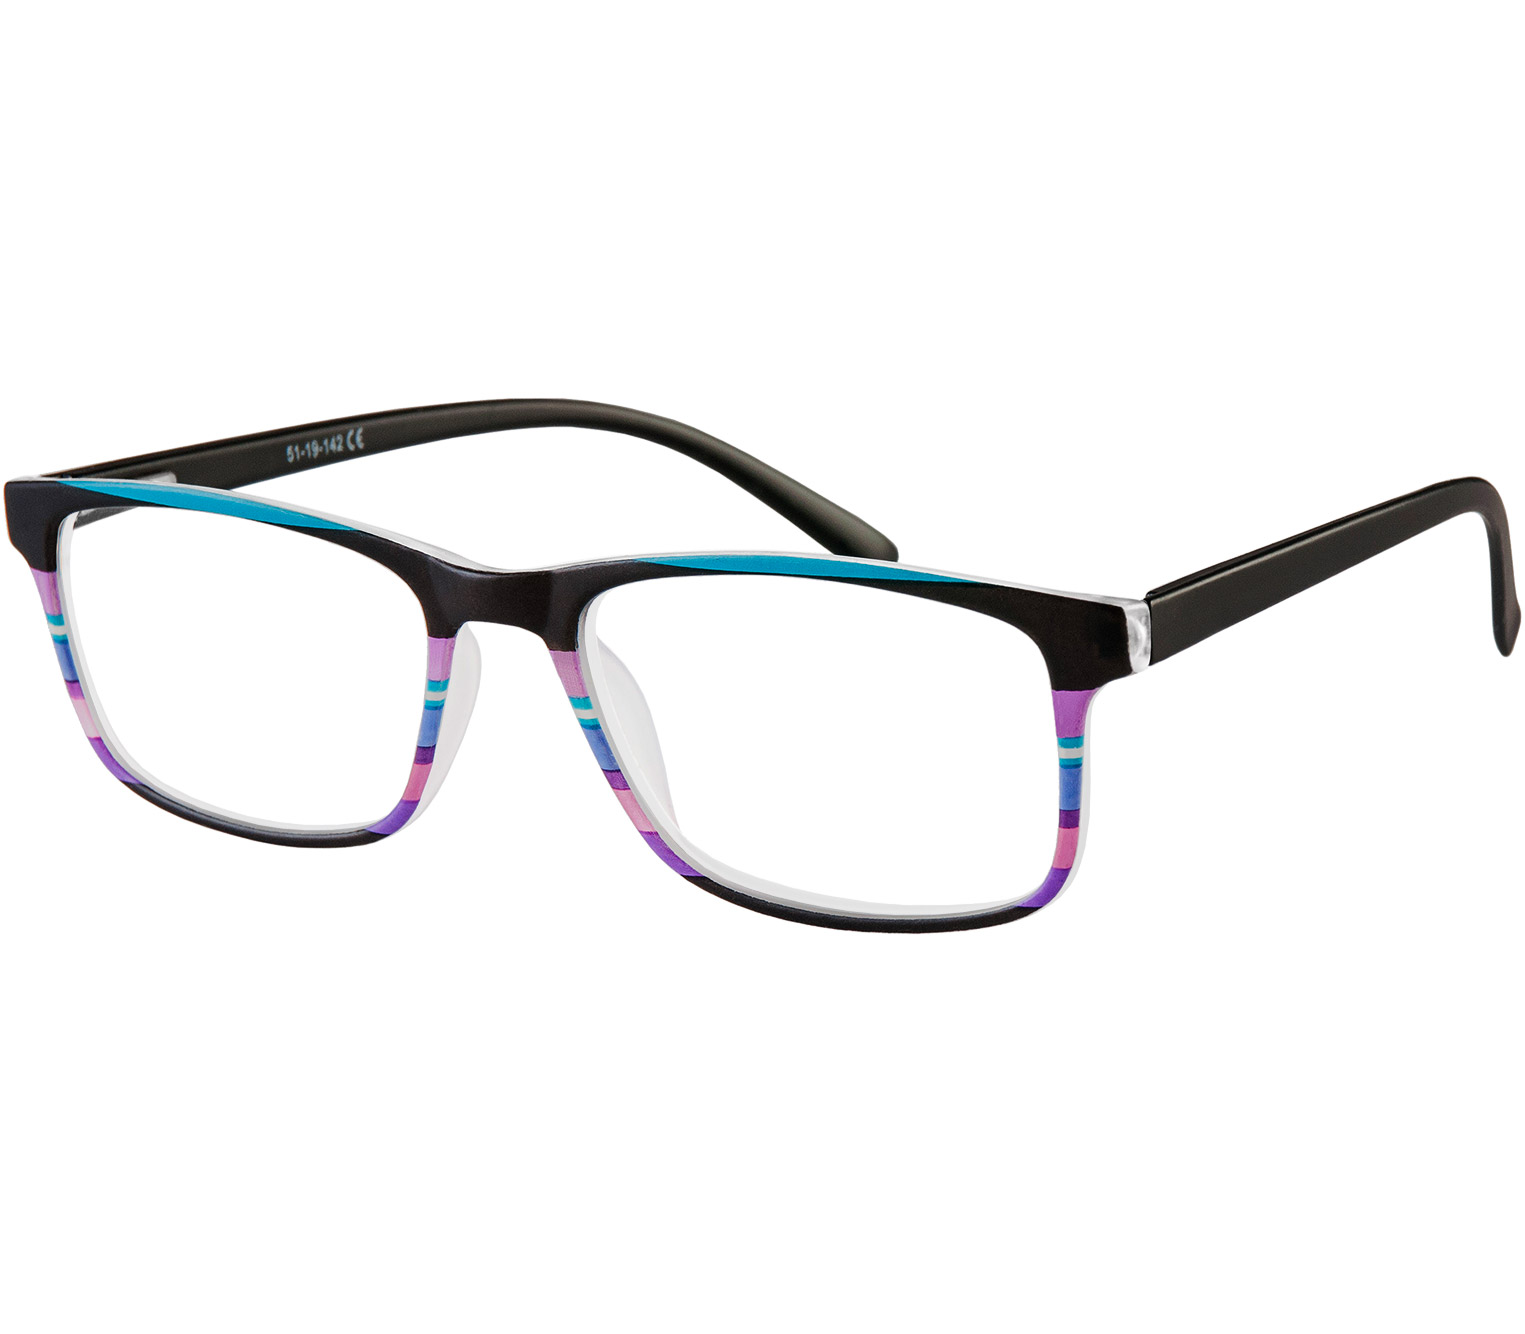 Main Image (Angle) - Samba (Black) Reading Glasses